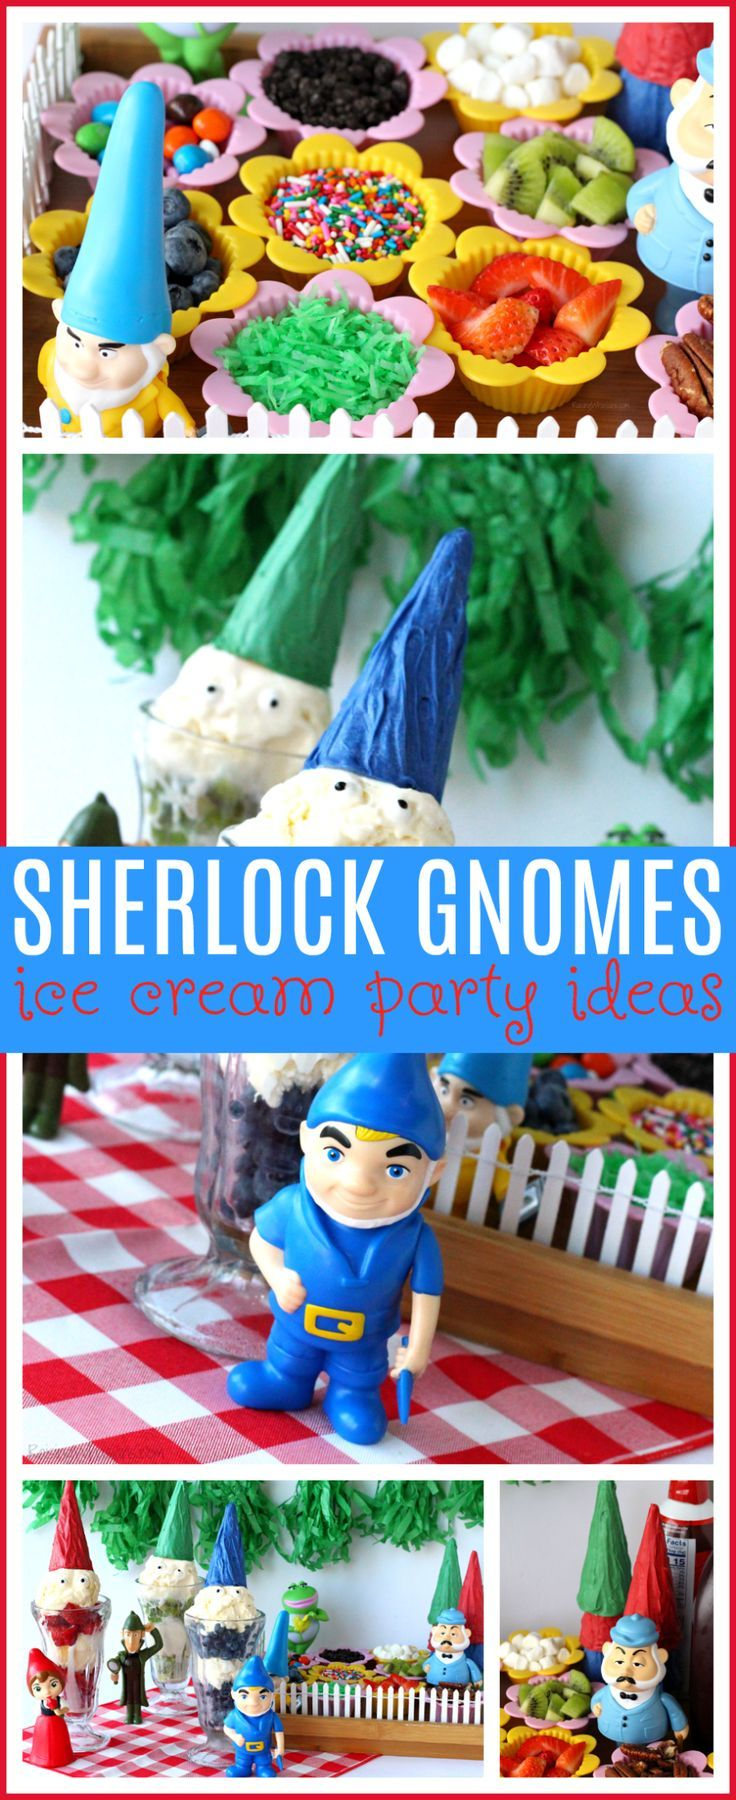 Sherlock Gnomes Ice Cream Party Ideas | Celebrate the new Sherlock Gnomes movie in theaters on March 23 with these fun kids party ideas  via @raisingwhasians (AD)